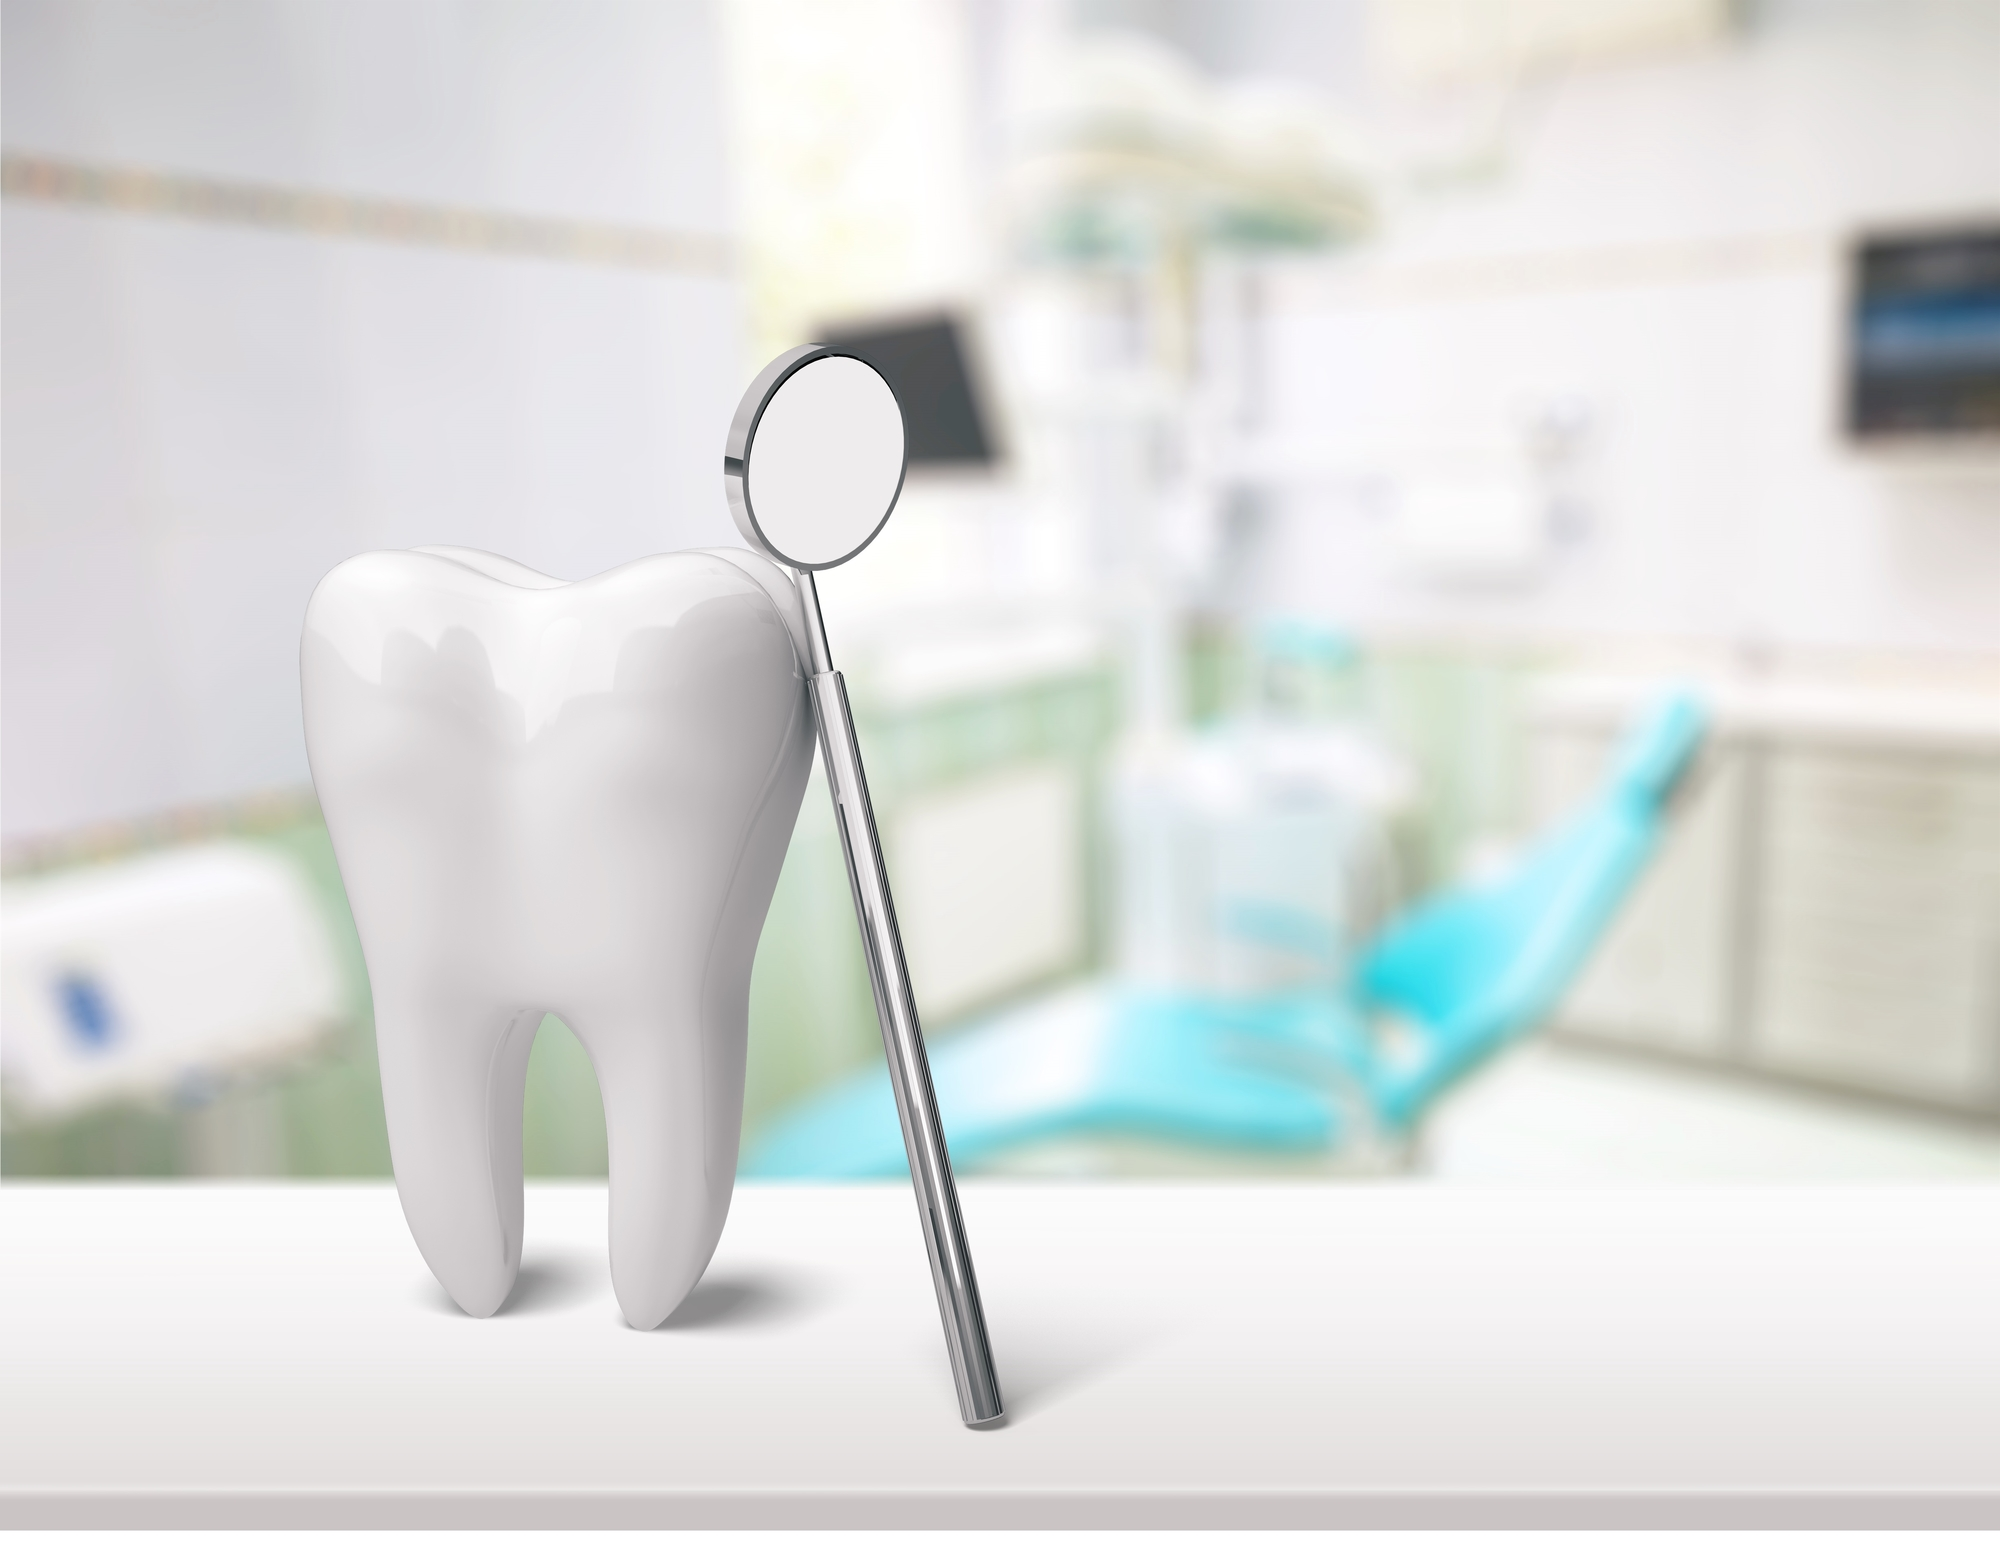 Book Your FREE Implant Consultation - You can meet with the dentist to discuss your dental treatment option for FREE. please call us at +1 (781) 324-6100 and our assisting team will schedule you an appointment instantly.